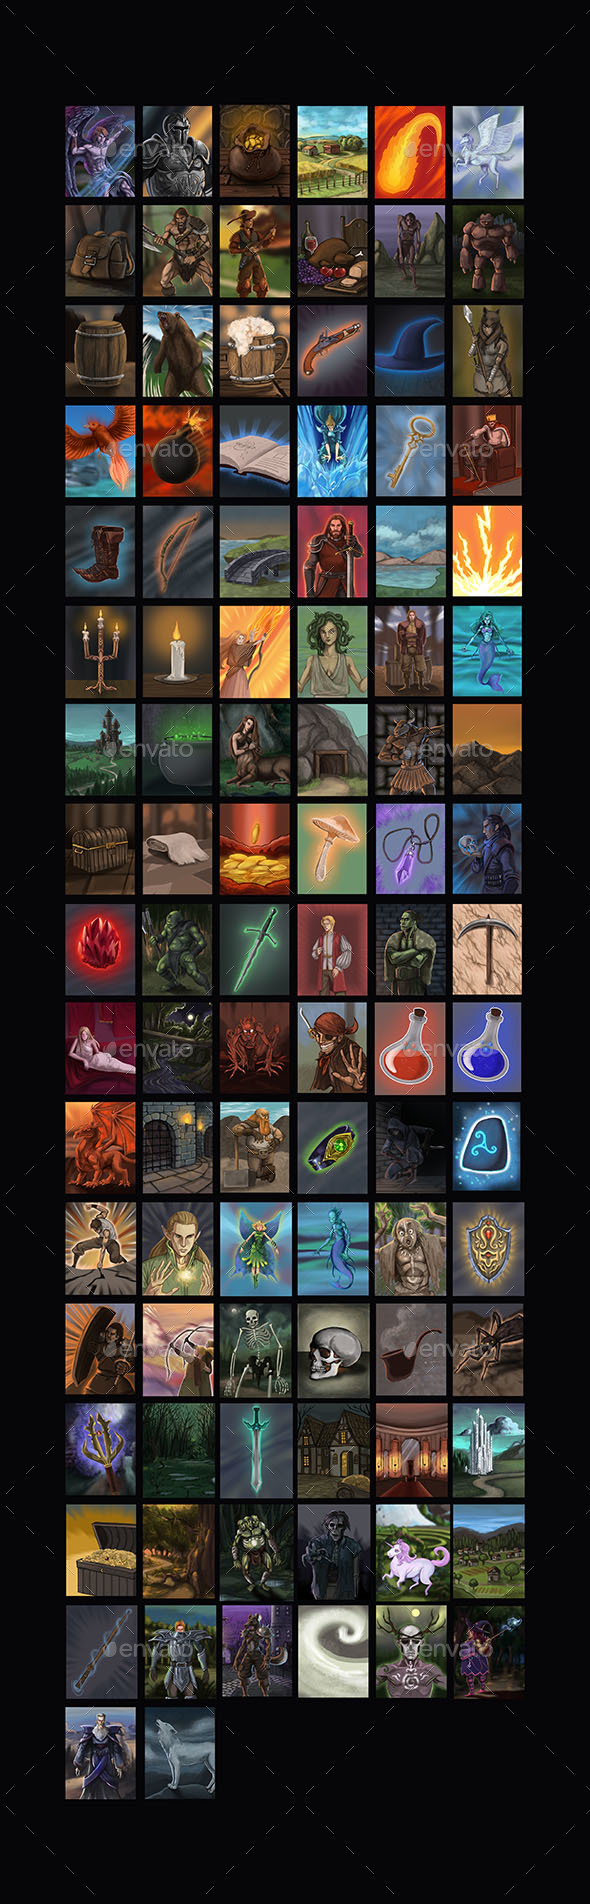 TCG Illustrations - Miscellaneous Game Assets